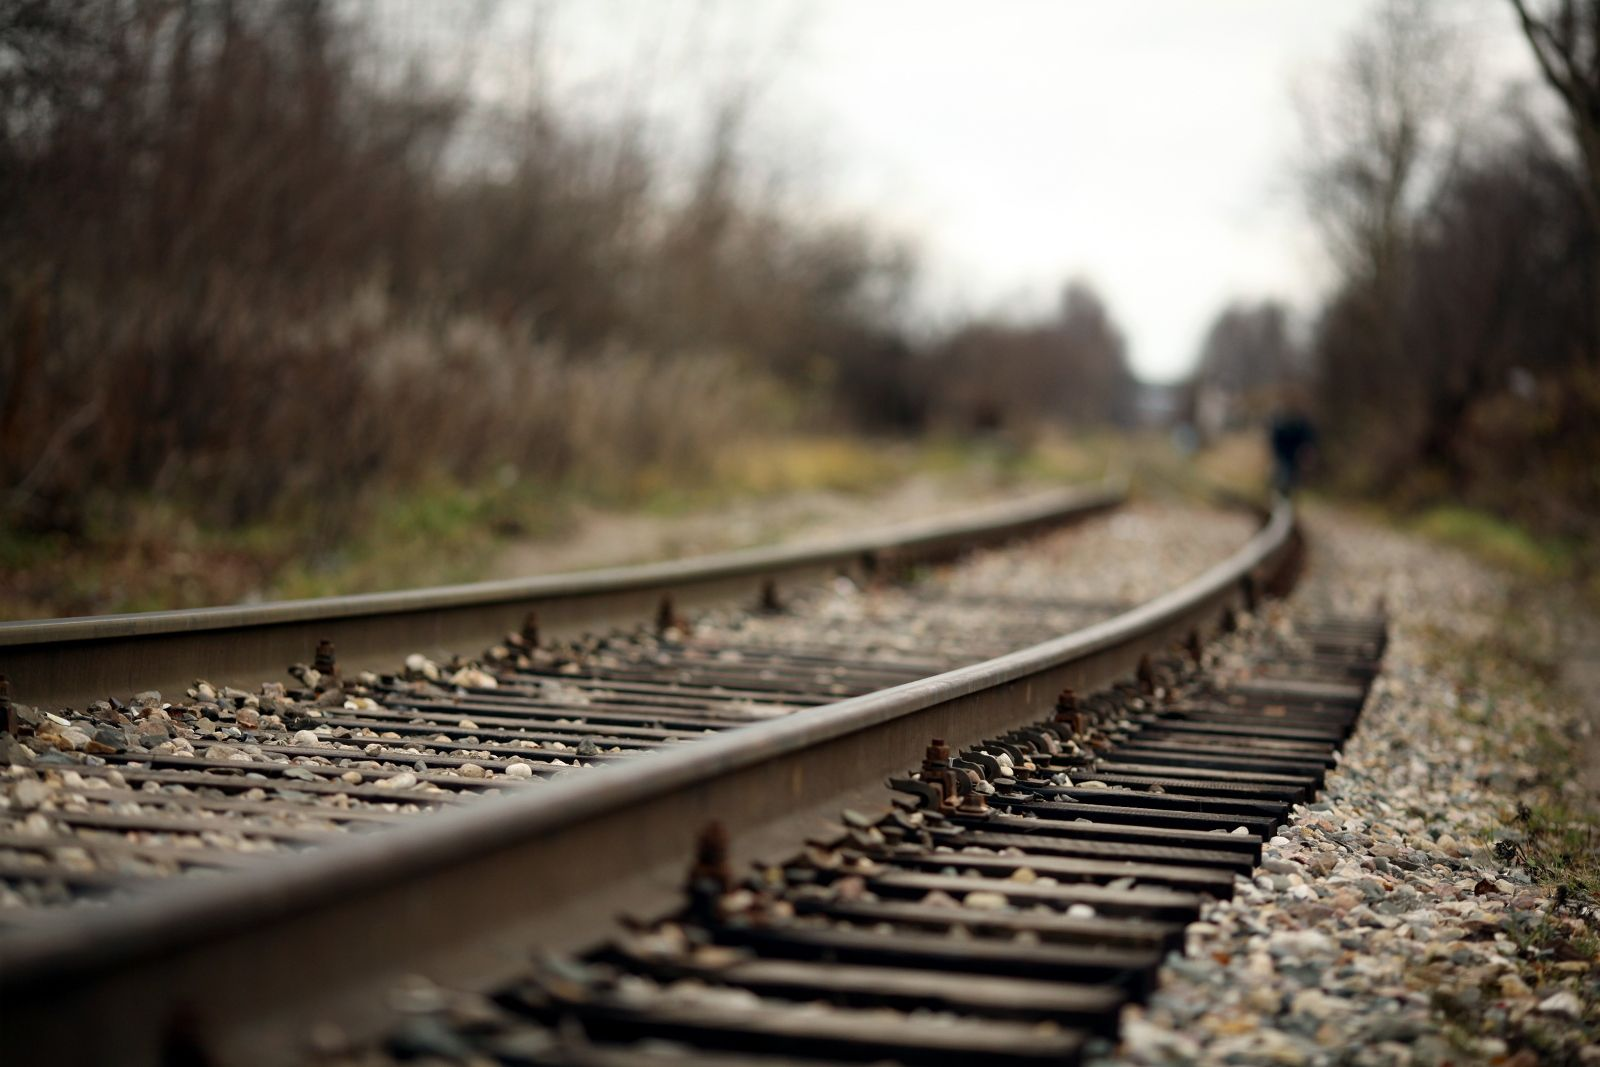 The Rail Safe system alerts the driver to obstacles up to 2 kilometers away. Image via Shutterstock.com